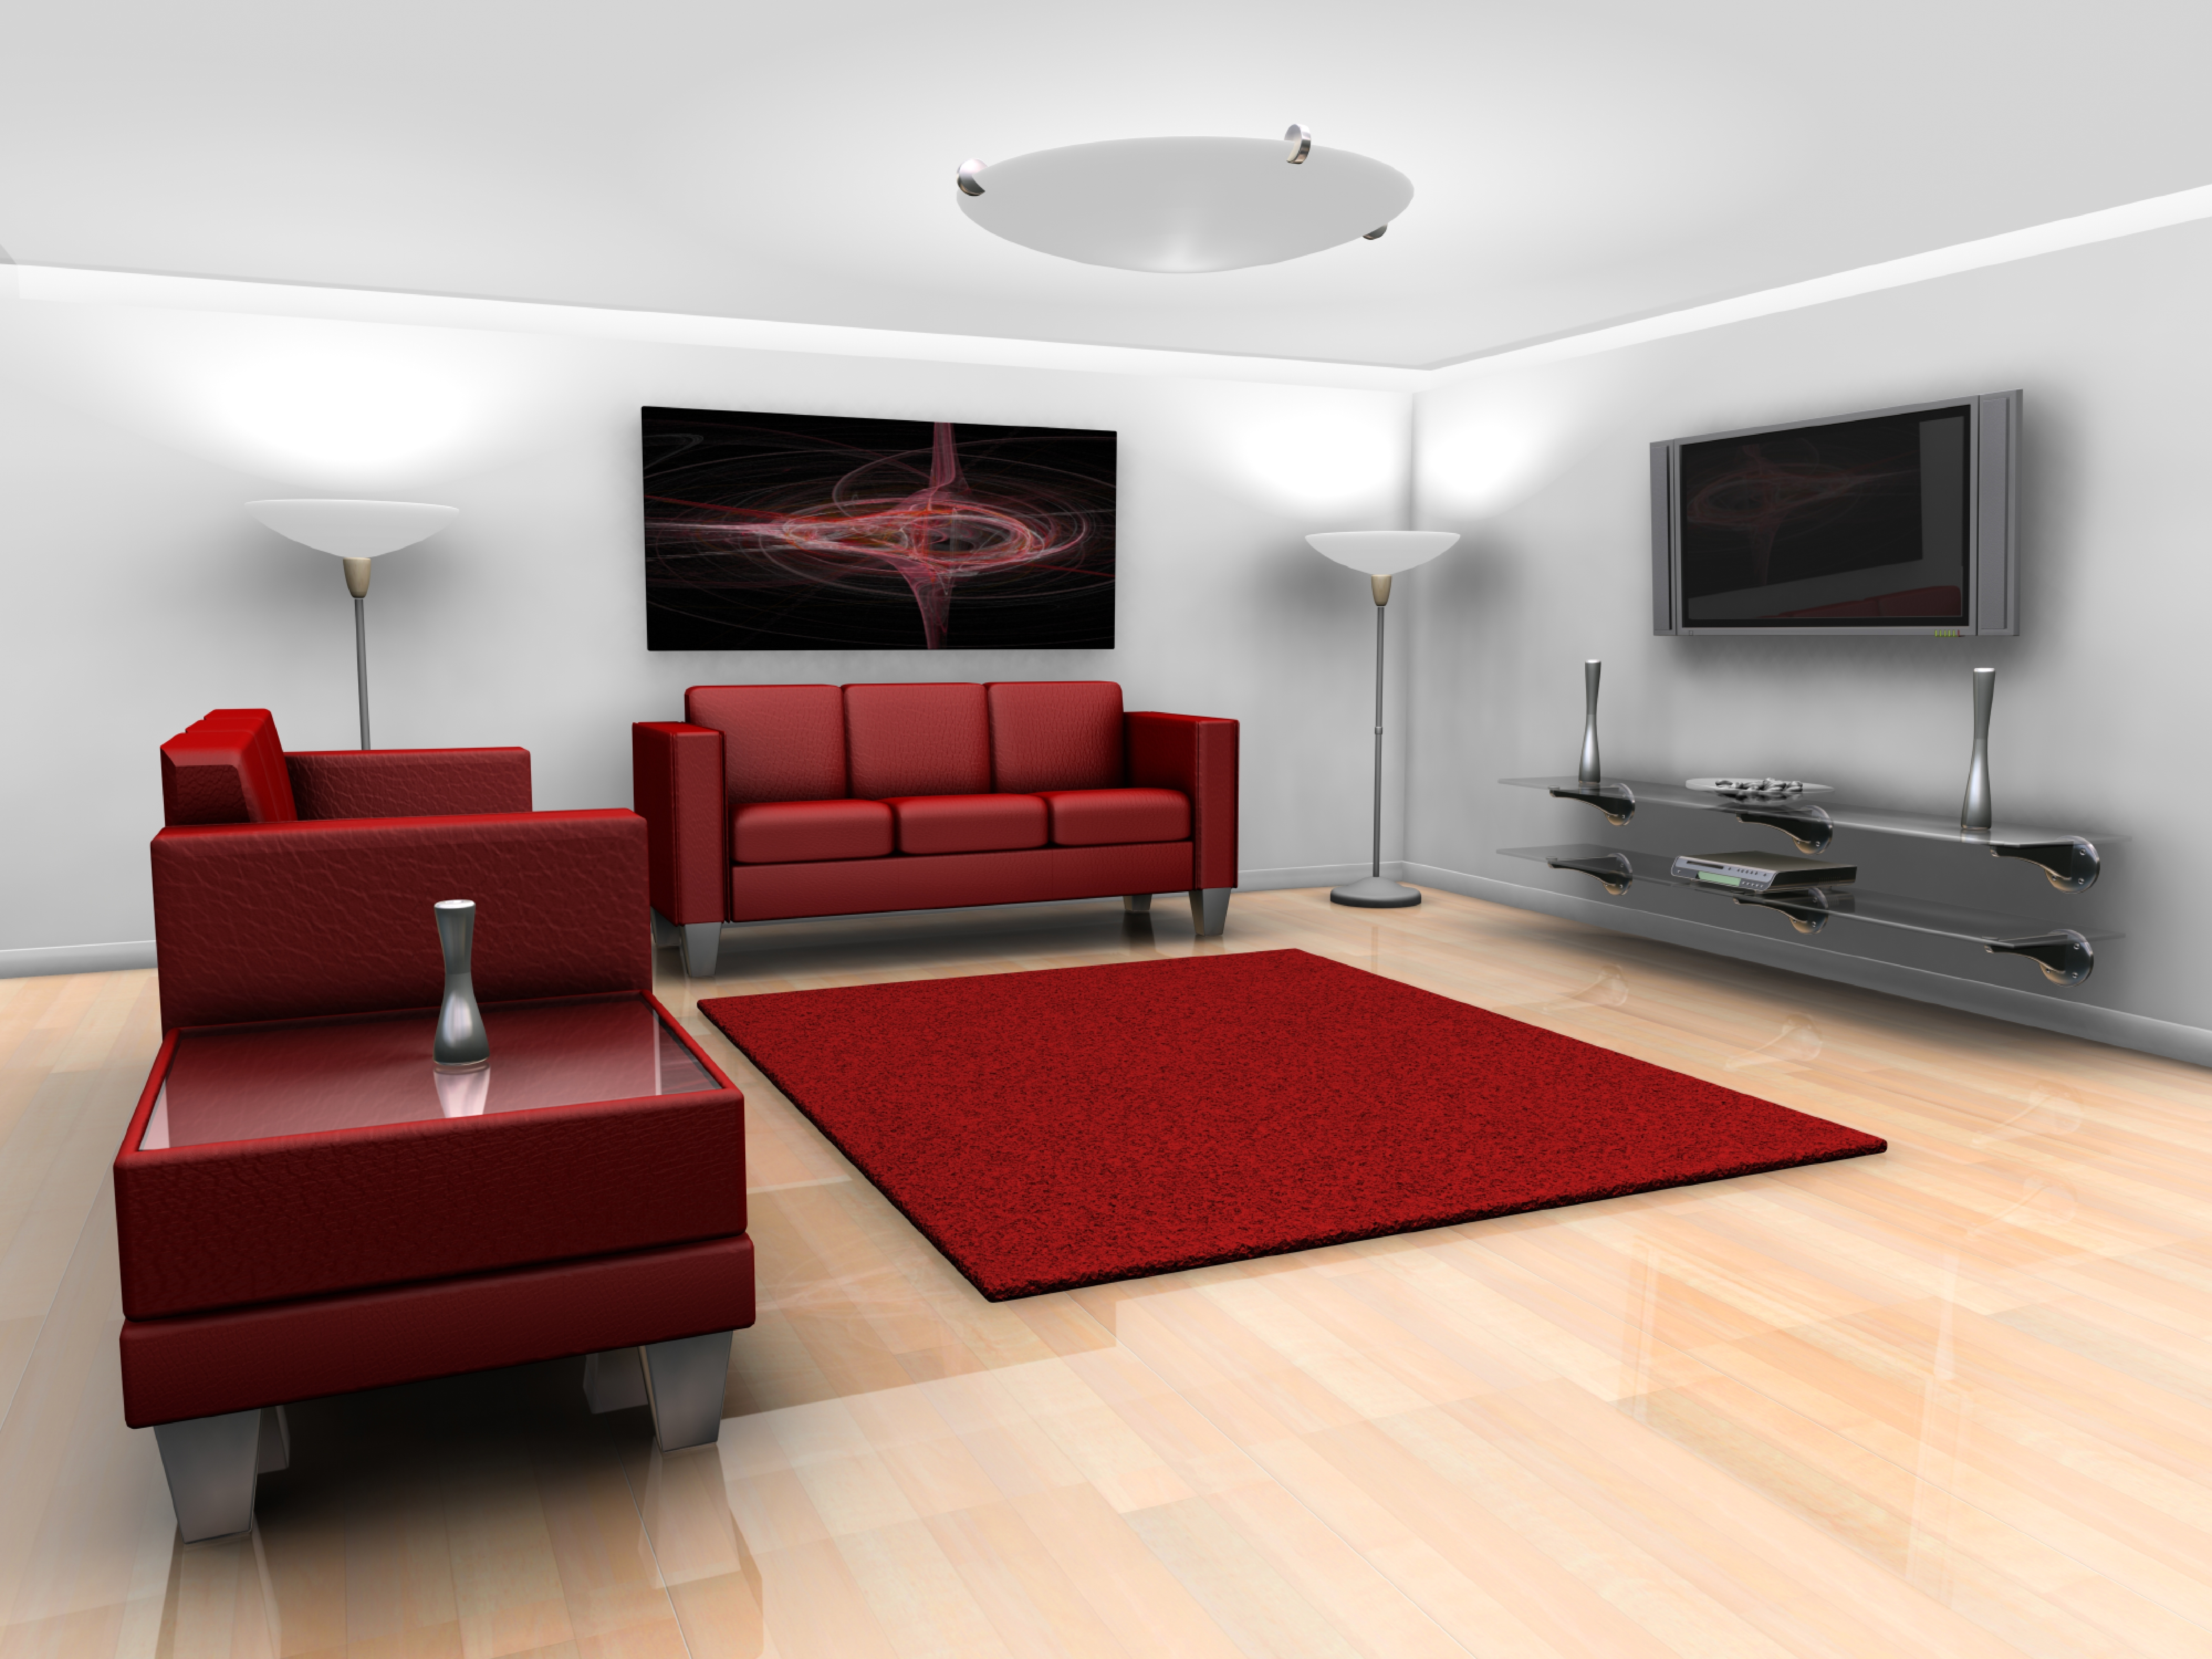 Interior design marbella 3d design of a living room Create a 3d room